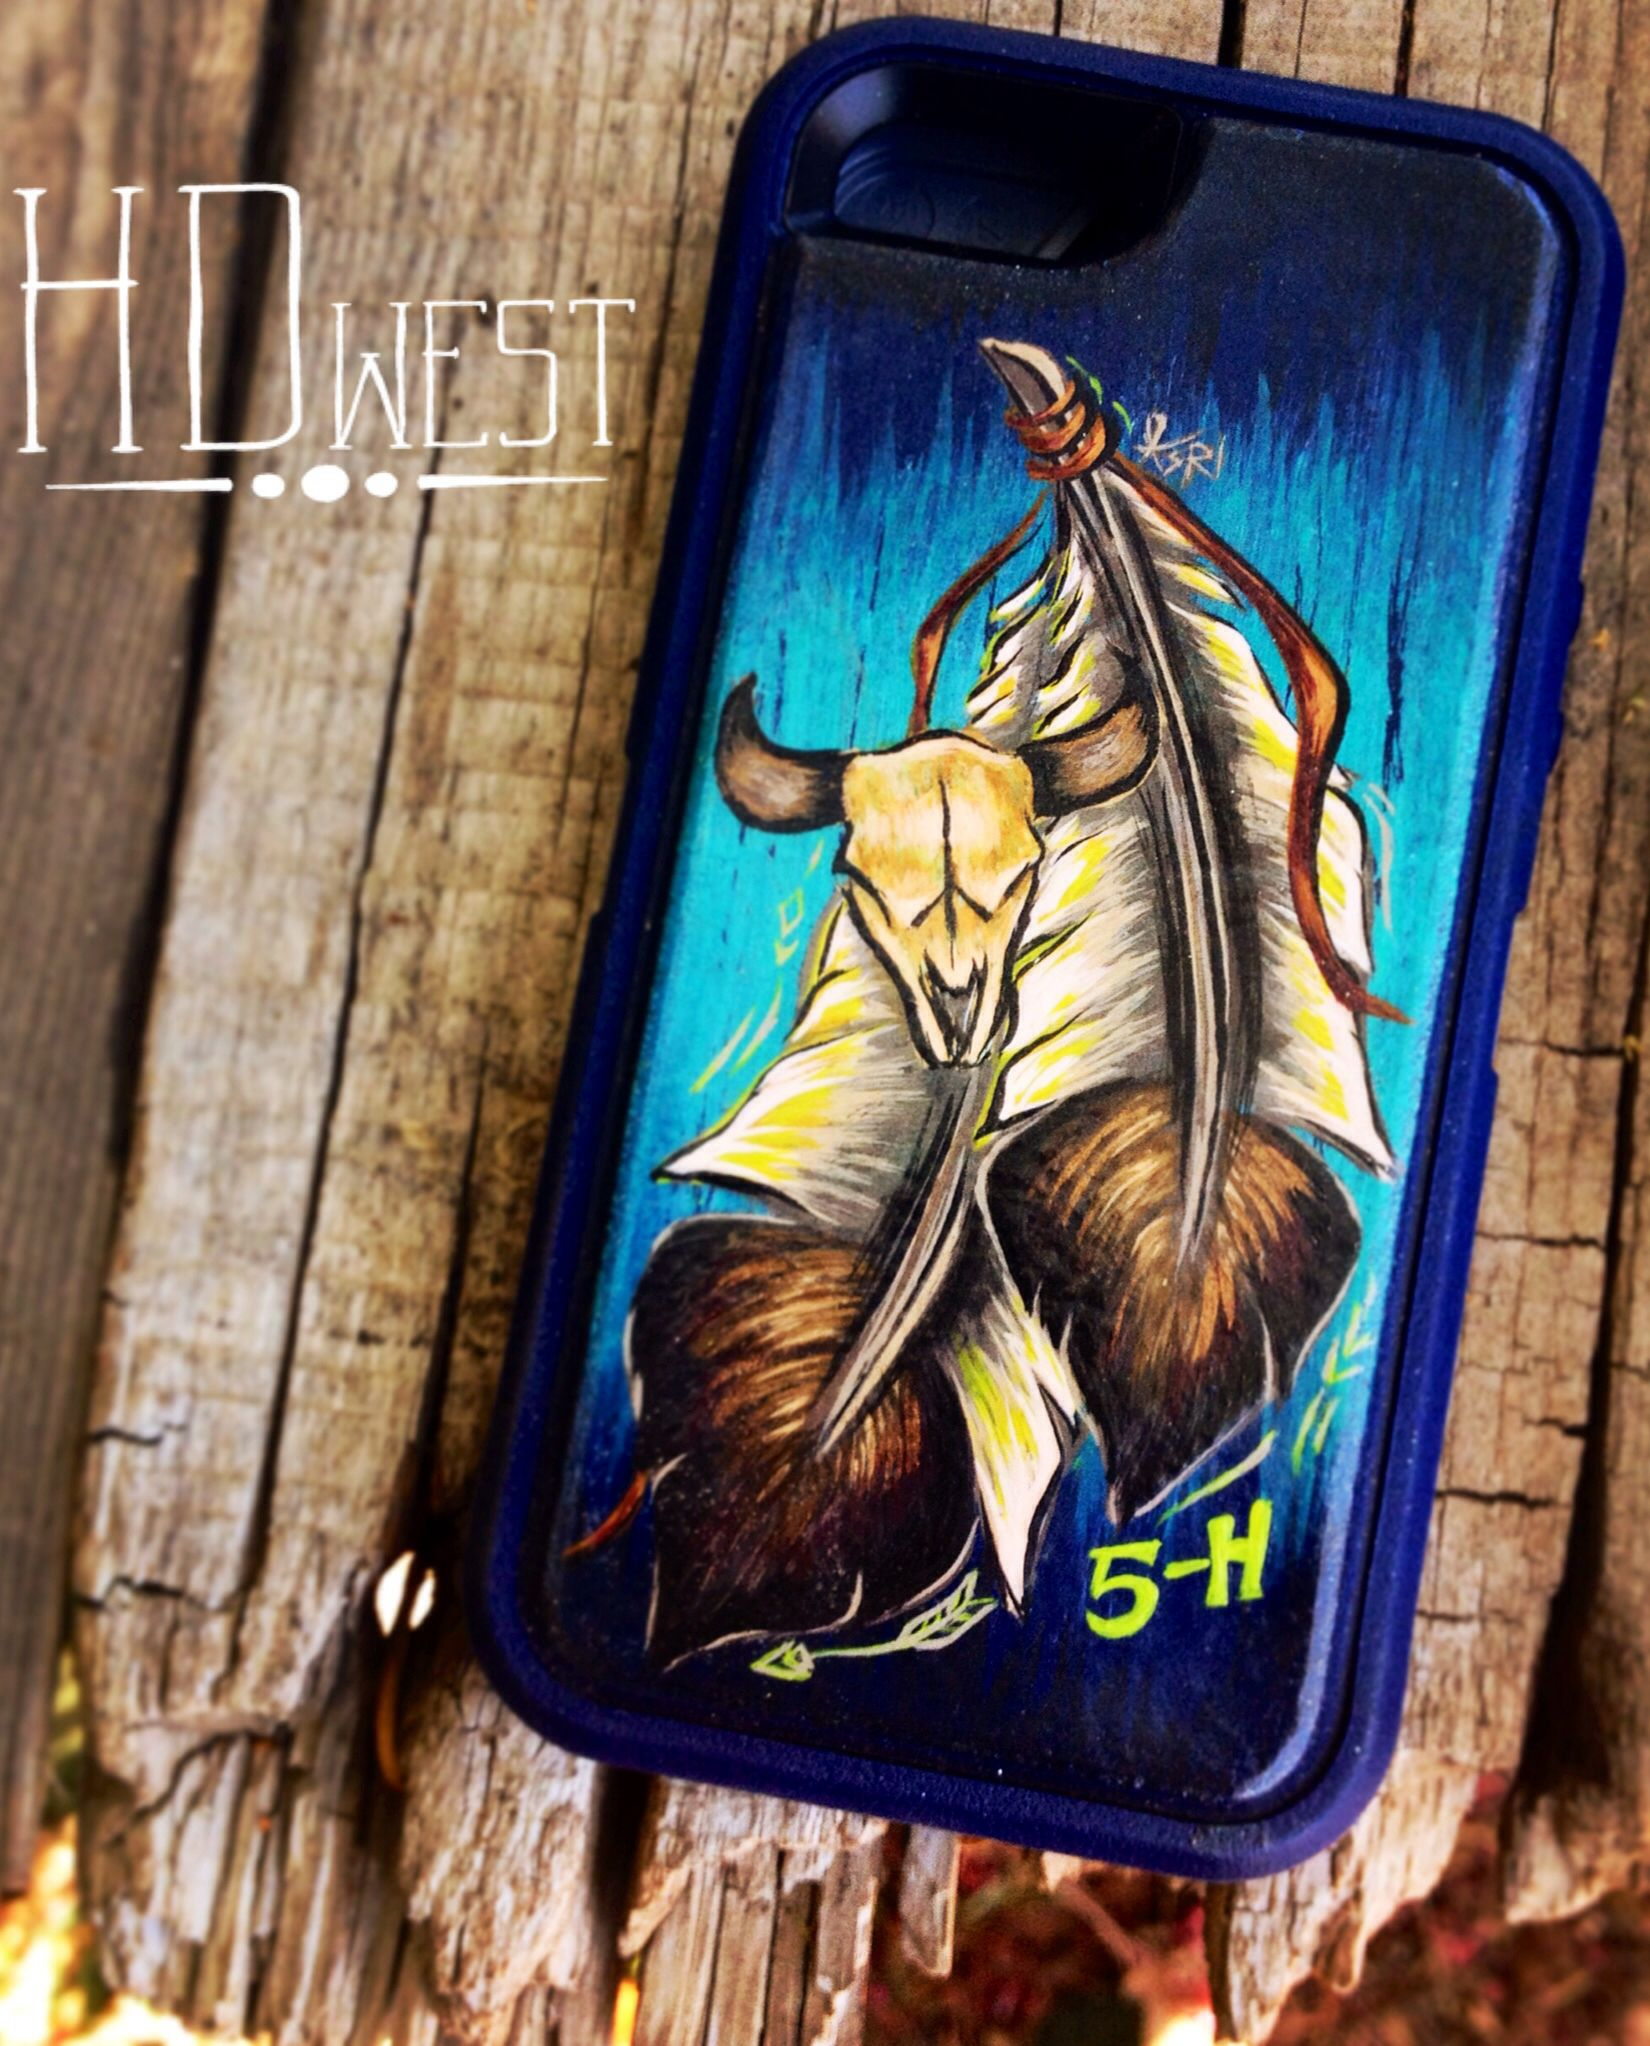 Hdwest leather iphone cover feathers steer skull on